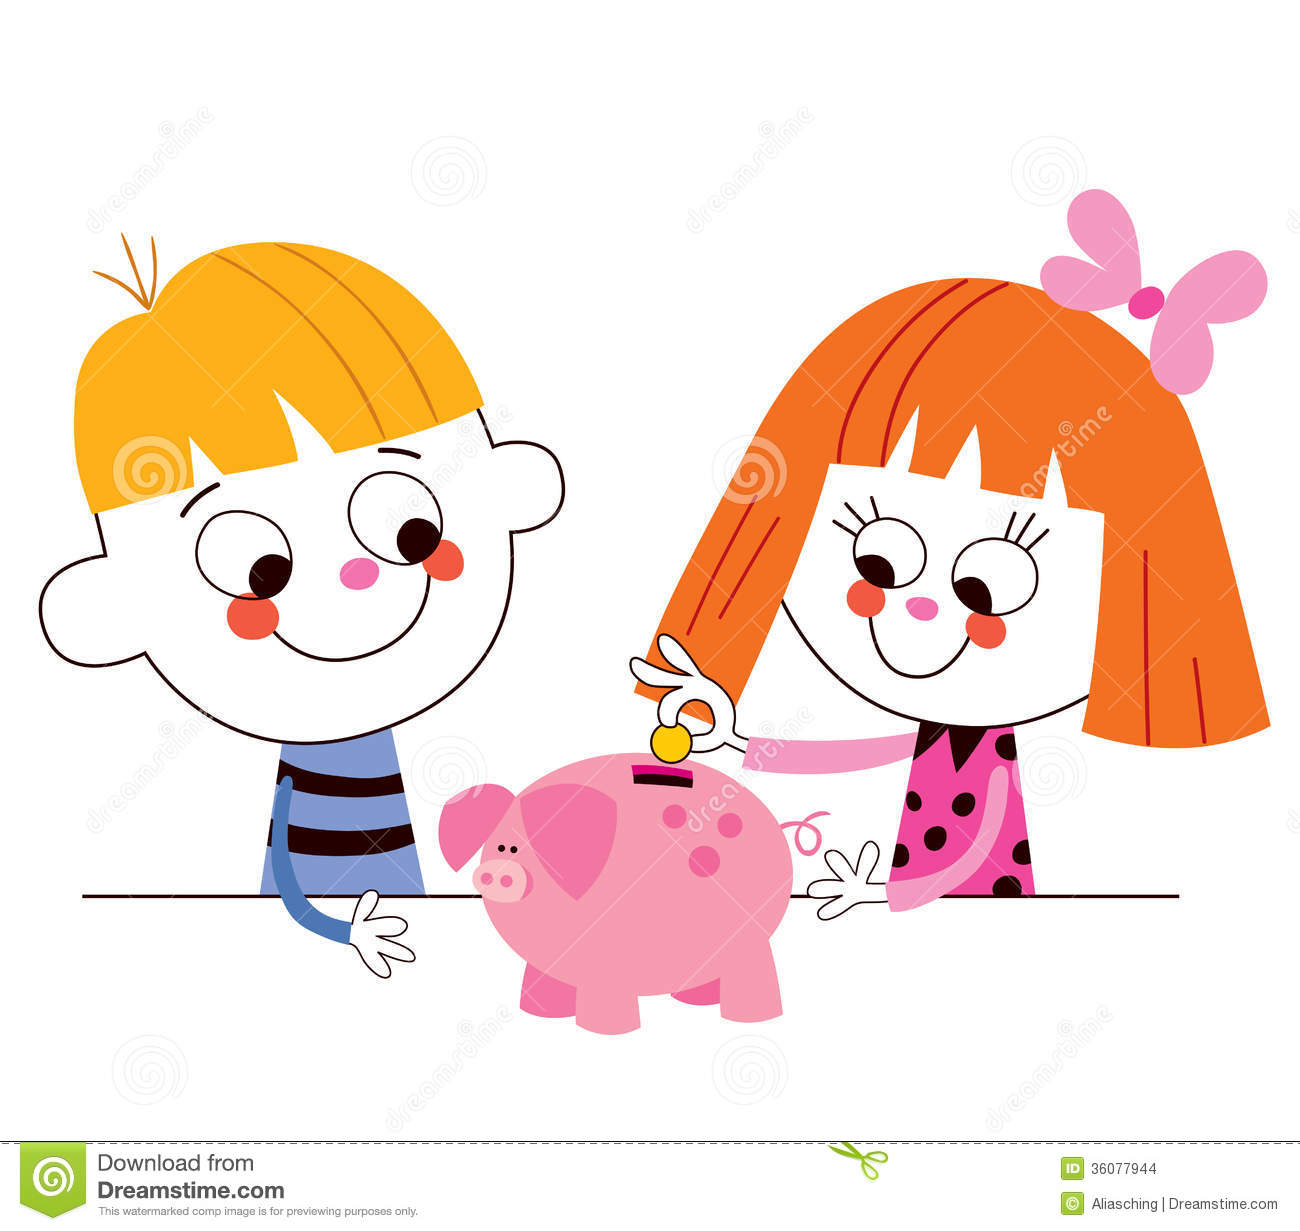 Kids with money clipart graphic royalty free download Kids and money clipart - ClipartFest graphic royalty free download